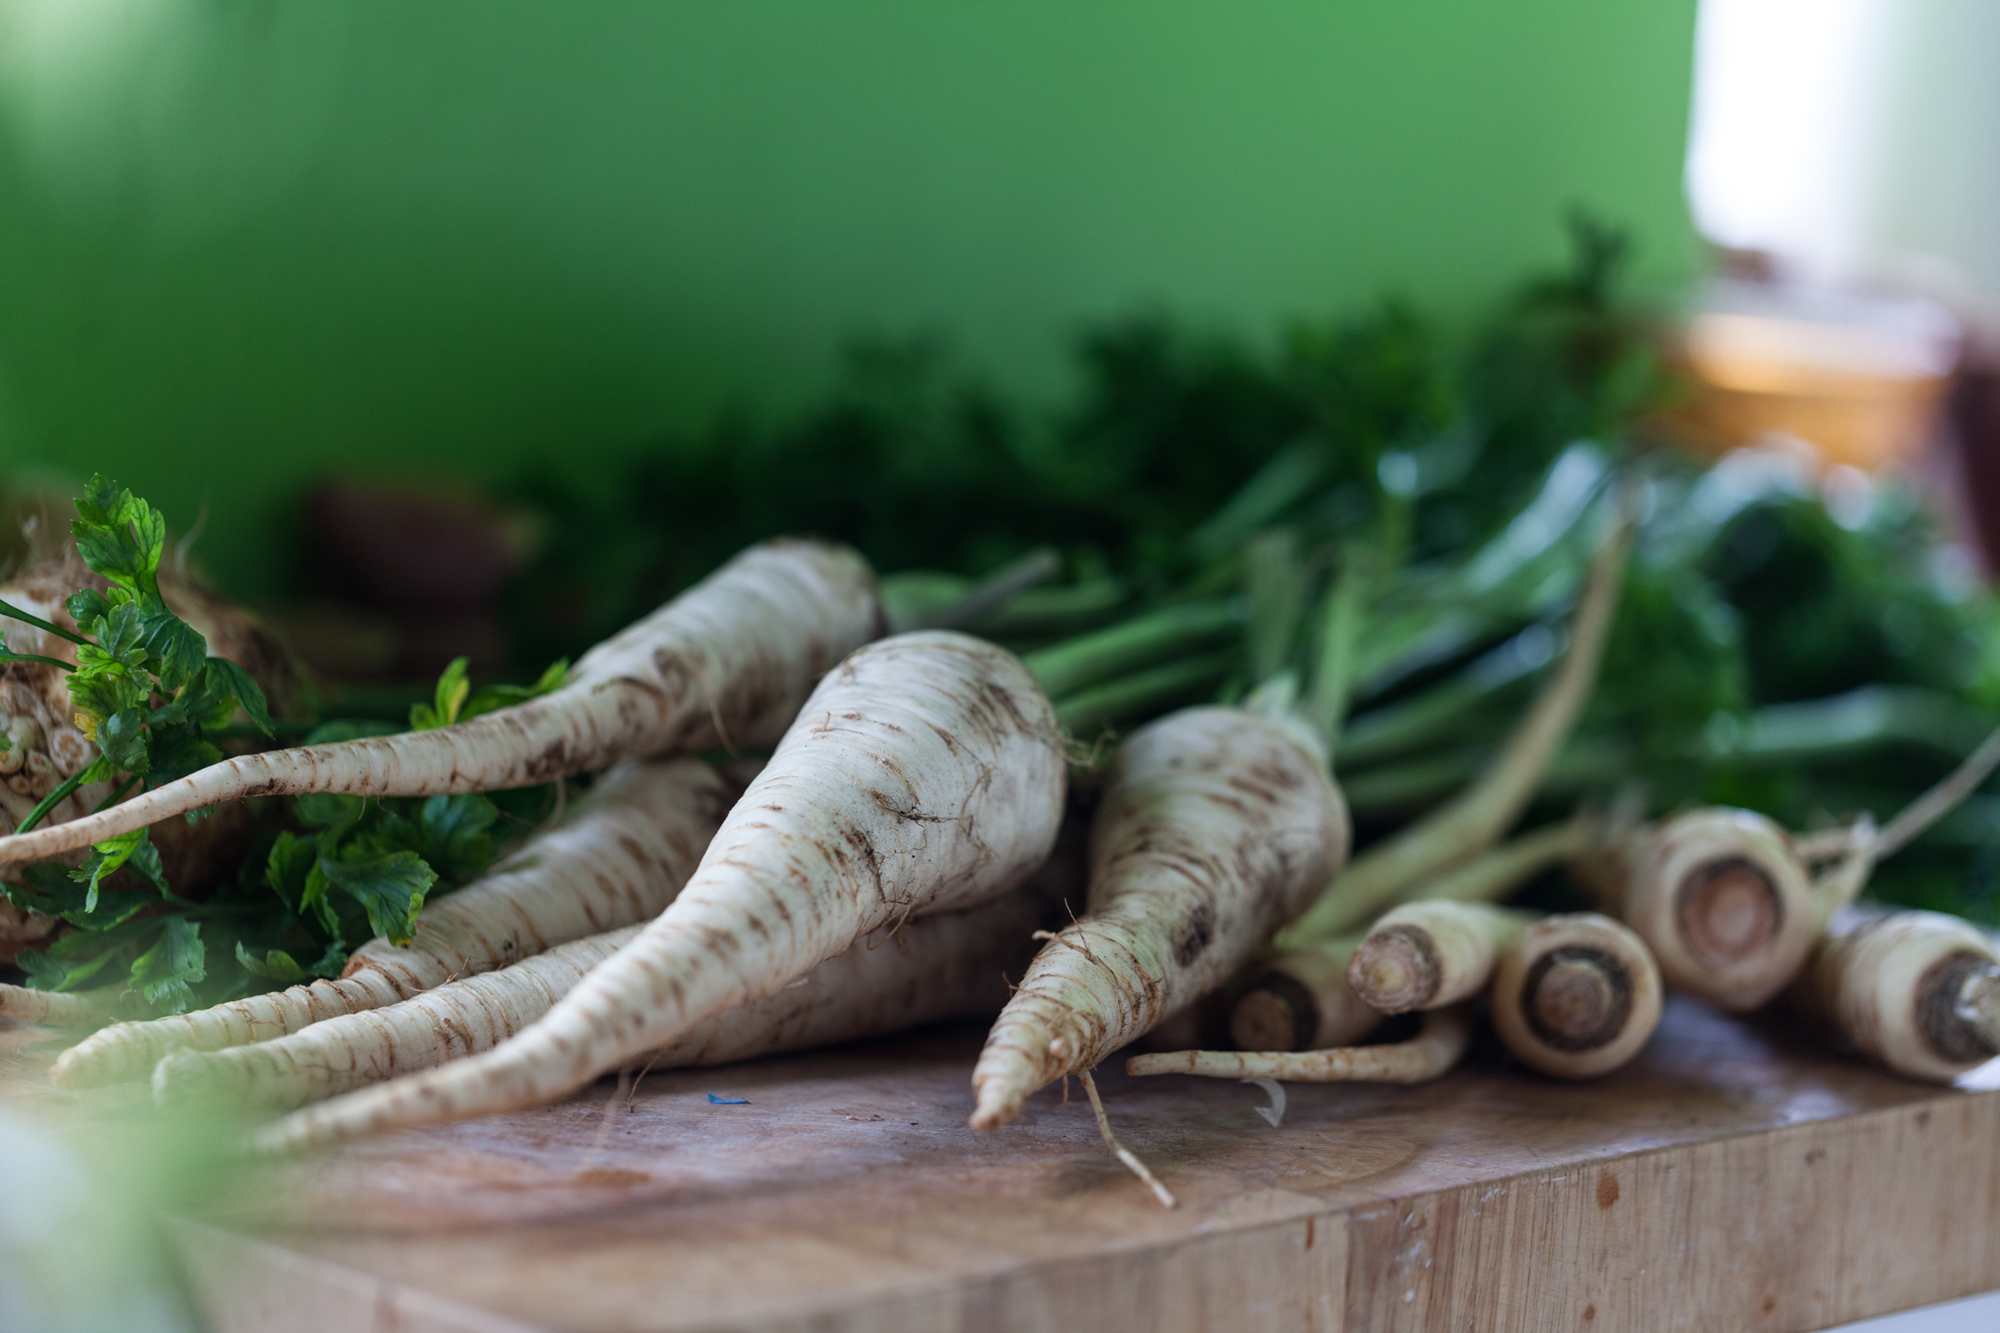 It's a little challenging to tell parsnips and parsley roots apart, unless they come with their tops on. Seen here in this frame from far left to right: Celeriac, parsley roots, and parsnips.